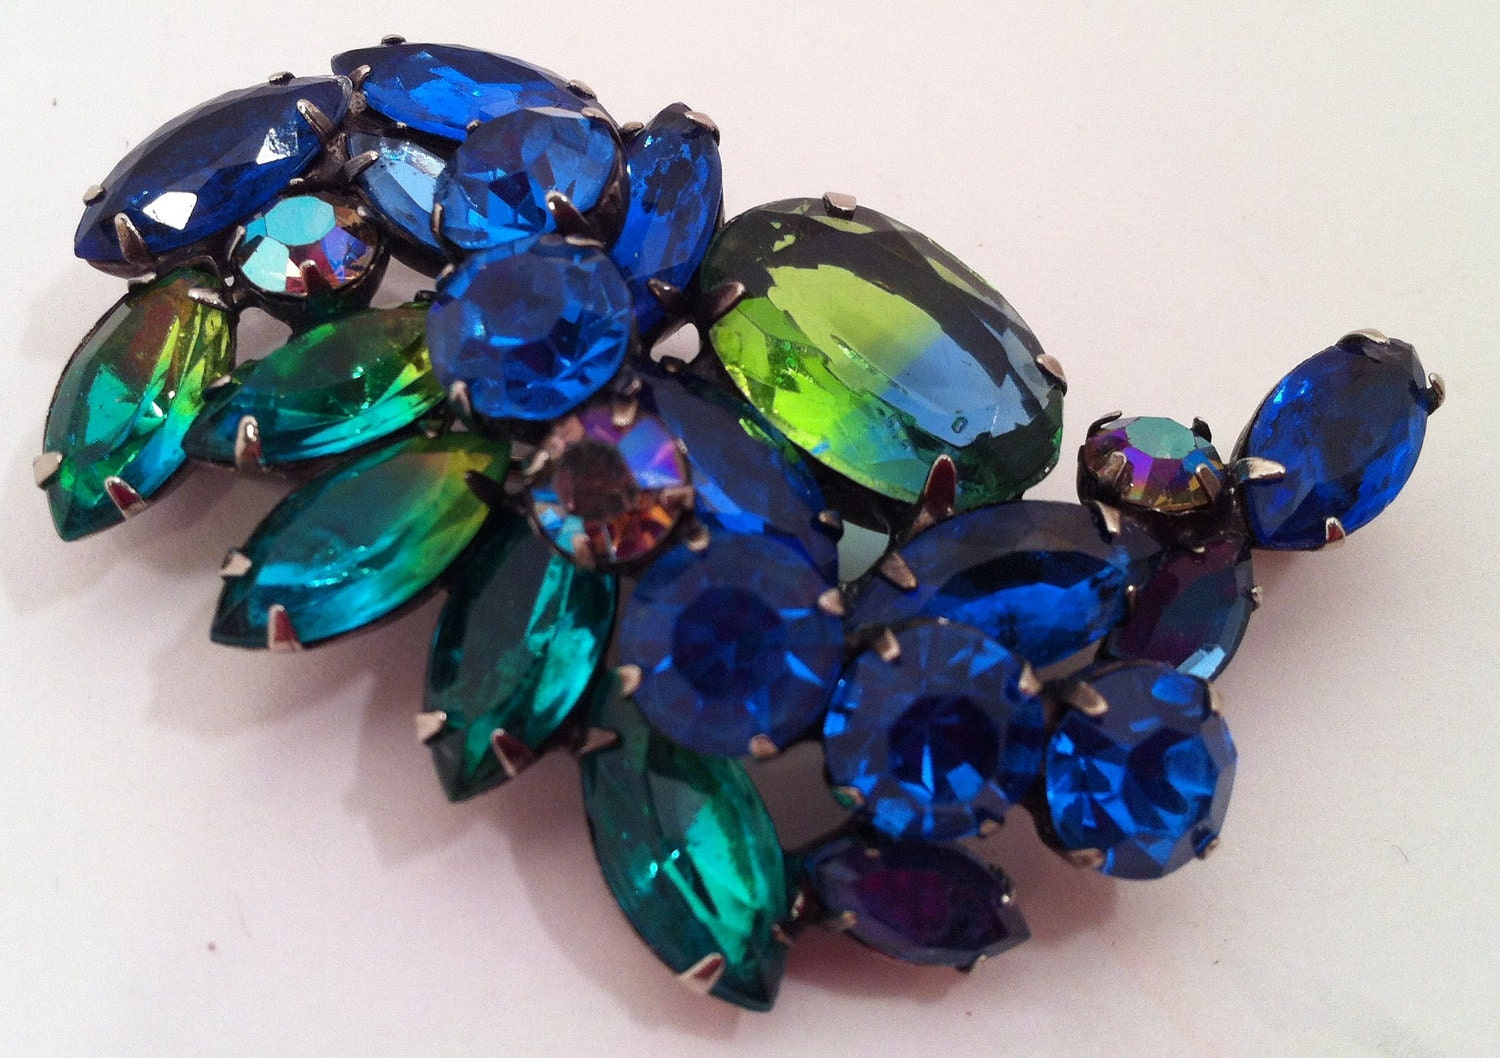 Kramer Watermelon Rhinestone Brooch, Blue and Green Rhinestones, FREE SHIPPING